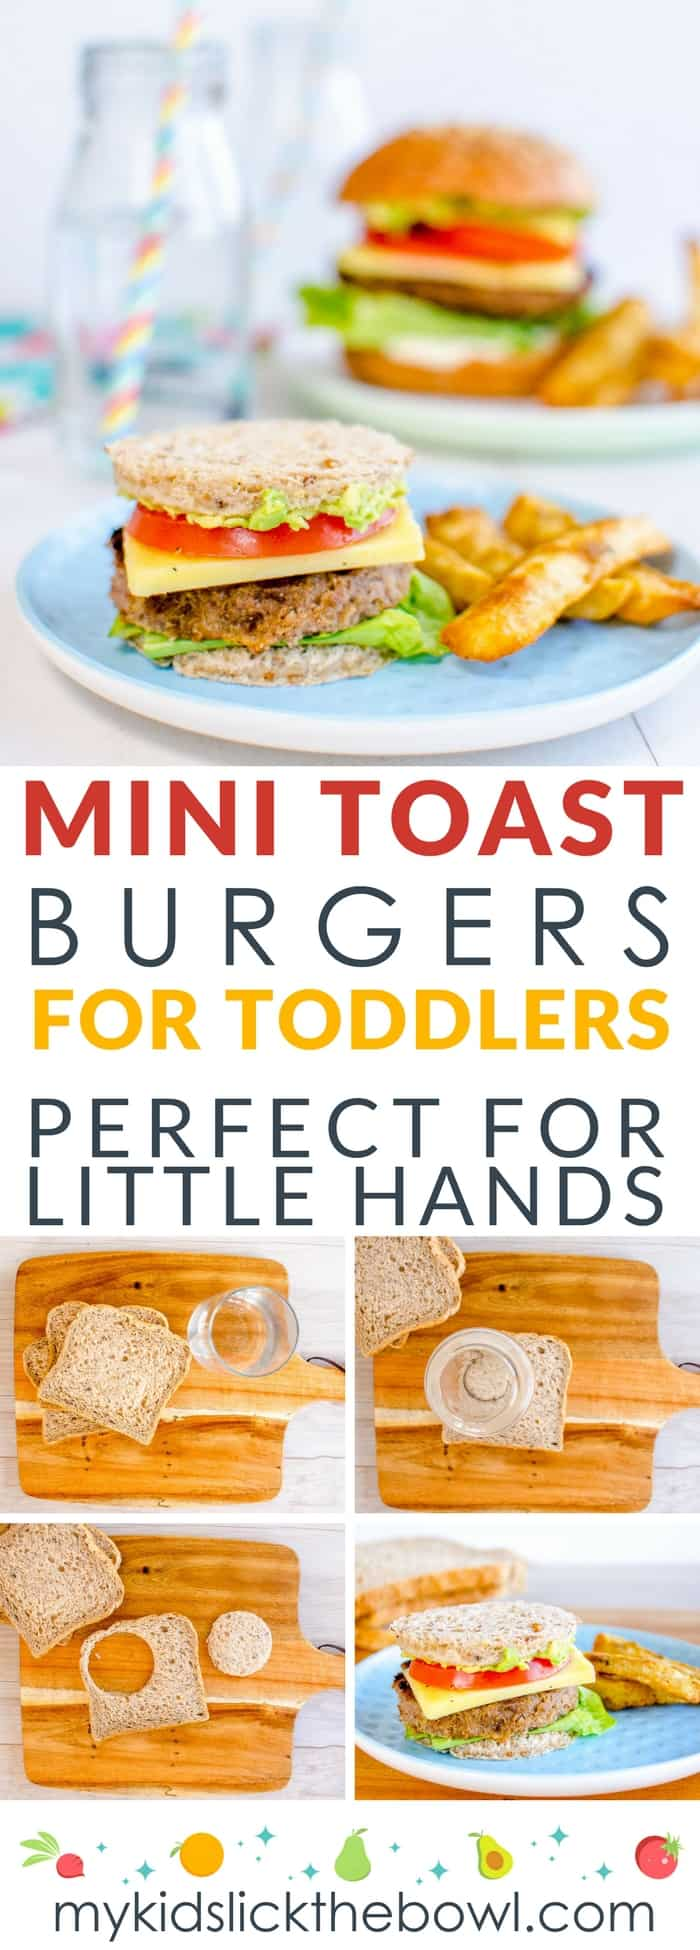 Mini toast burgers for toddlers a kid friendly dinner perfect for picky eaters and baby led weaning #kidfriendlydinners #pickyeaters #burgers #babyledweaning